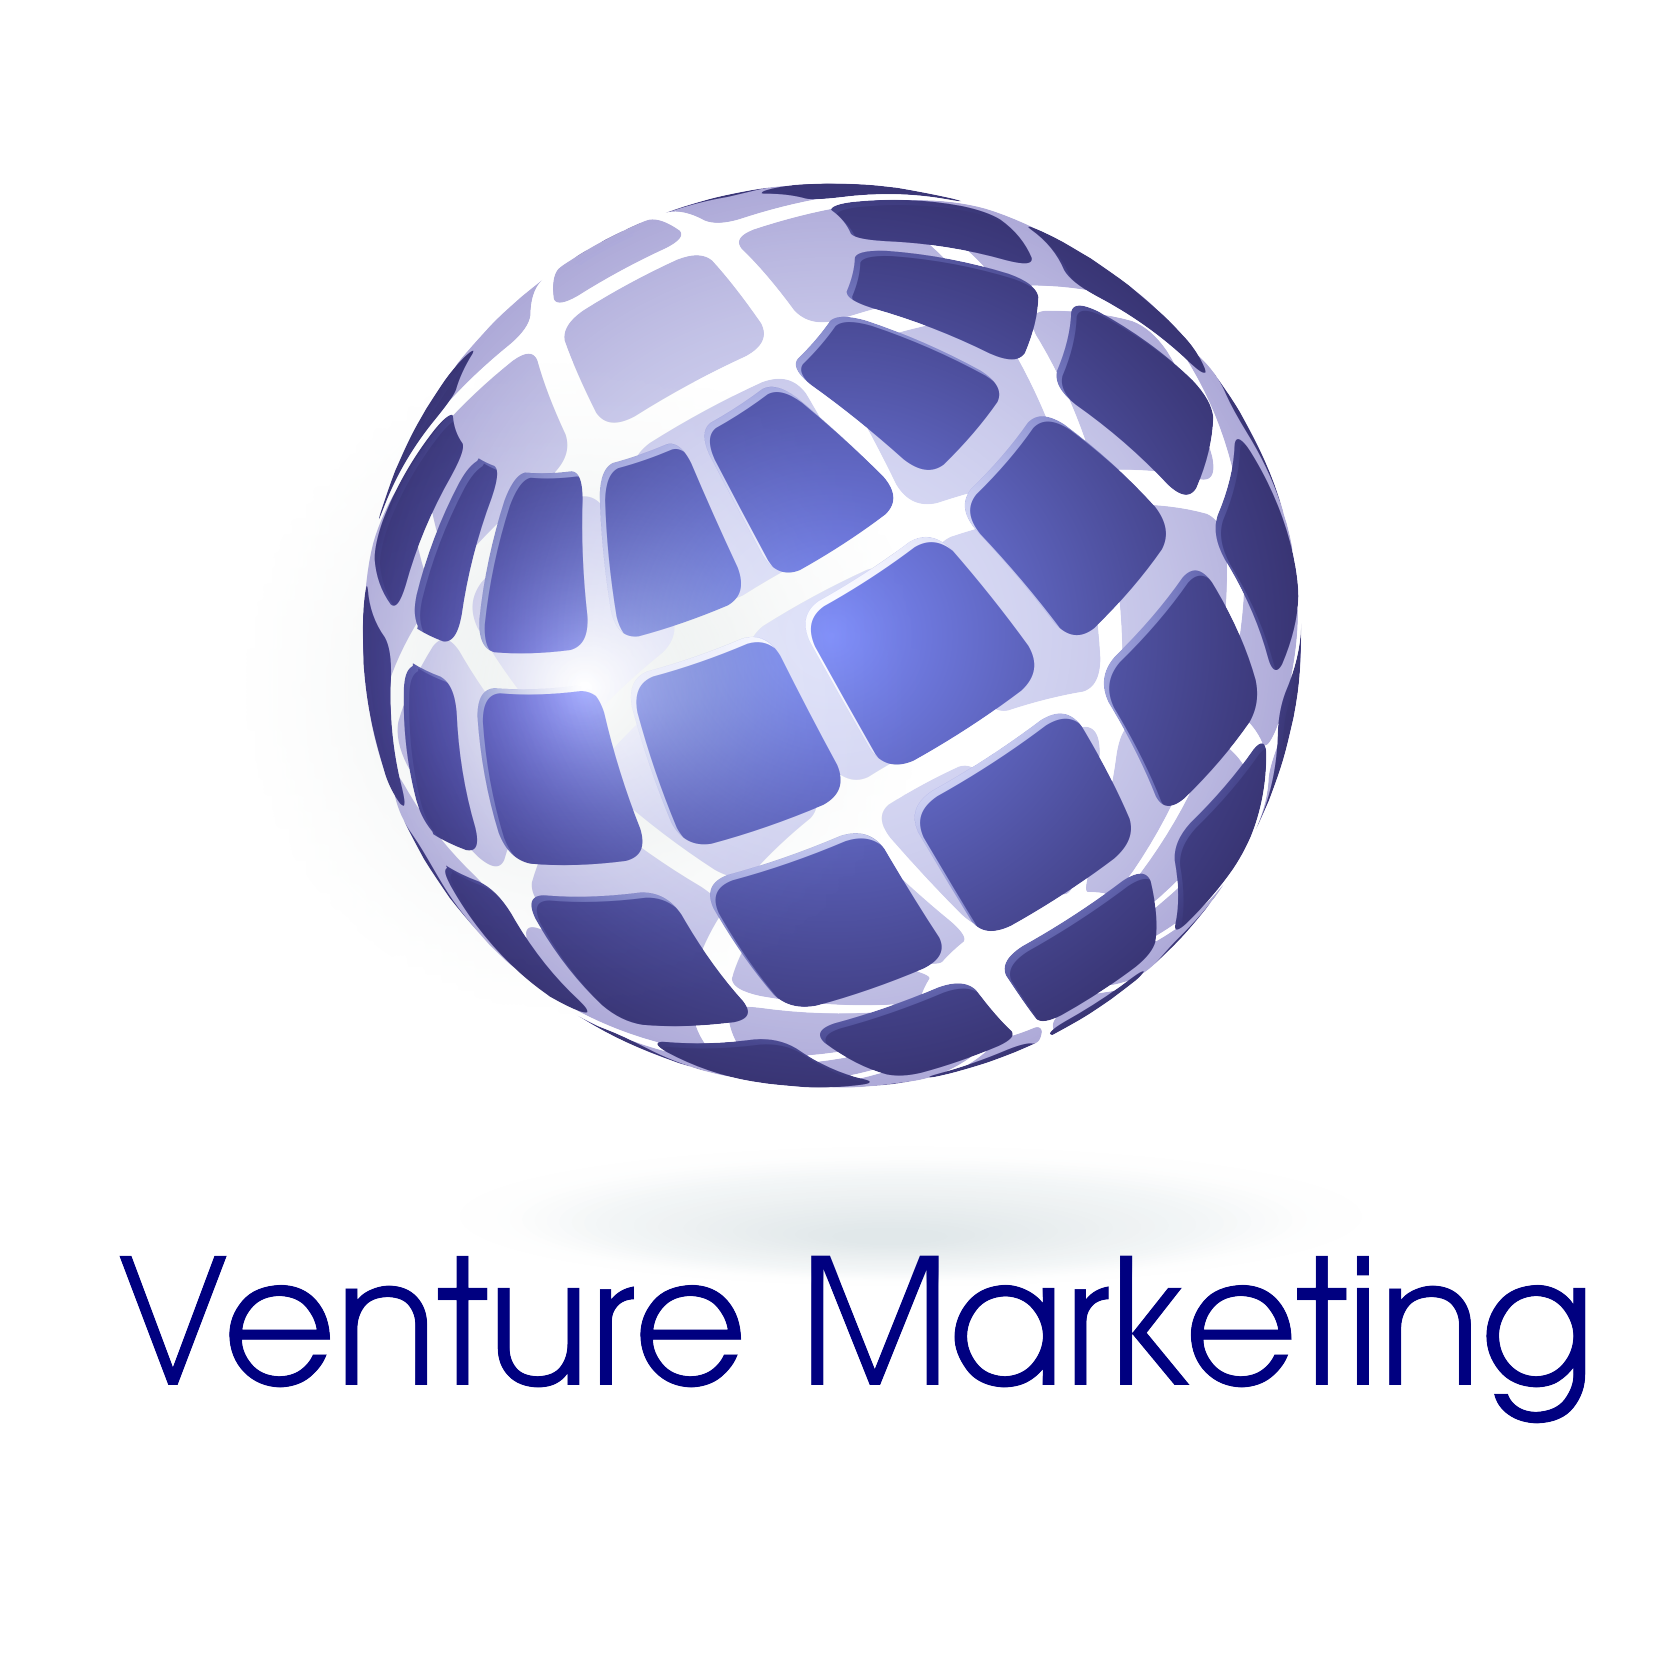 Venture Marketing